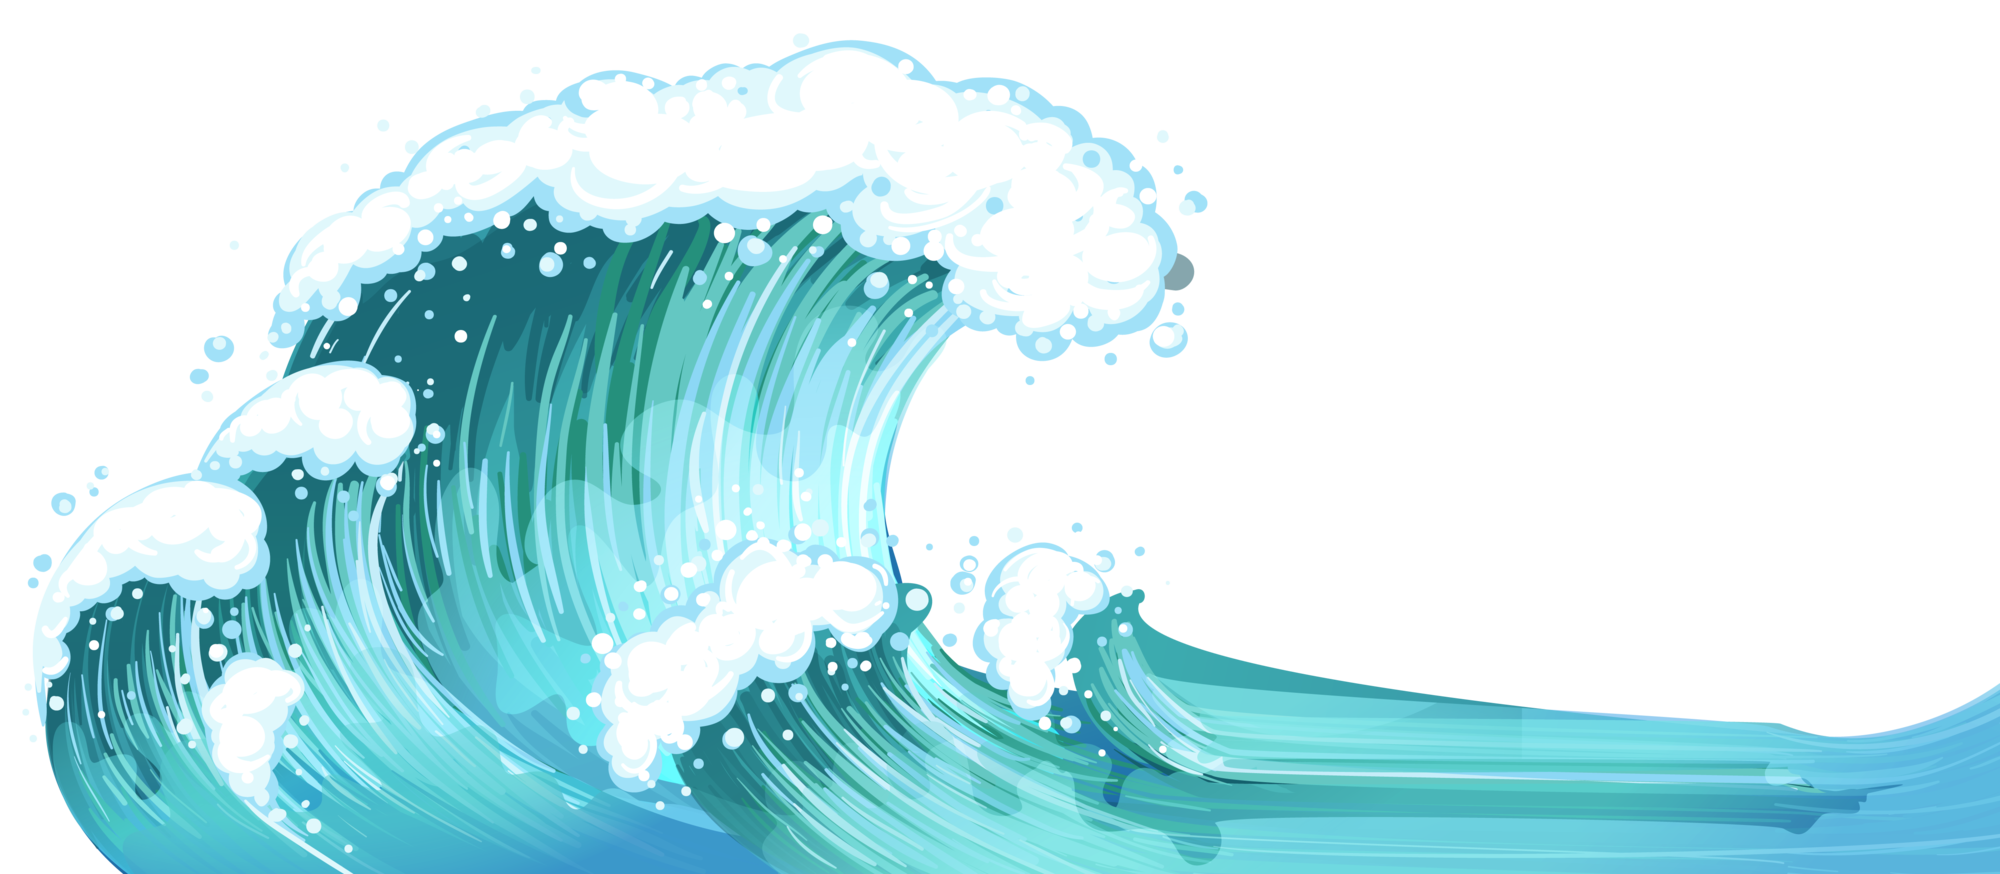 Image f b c. Waves clipart ocean current